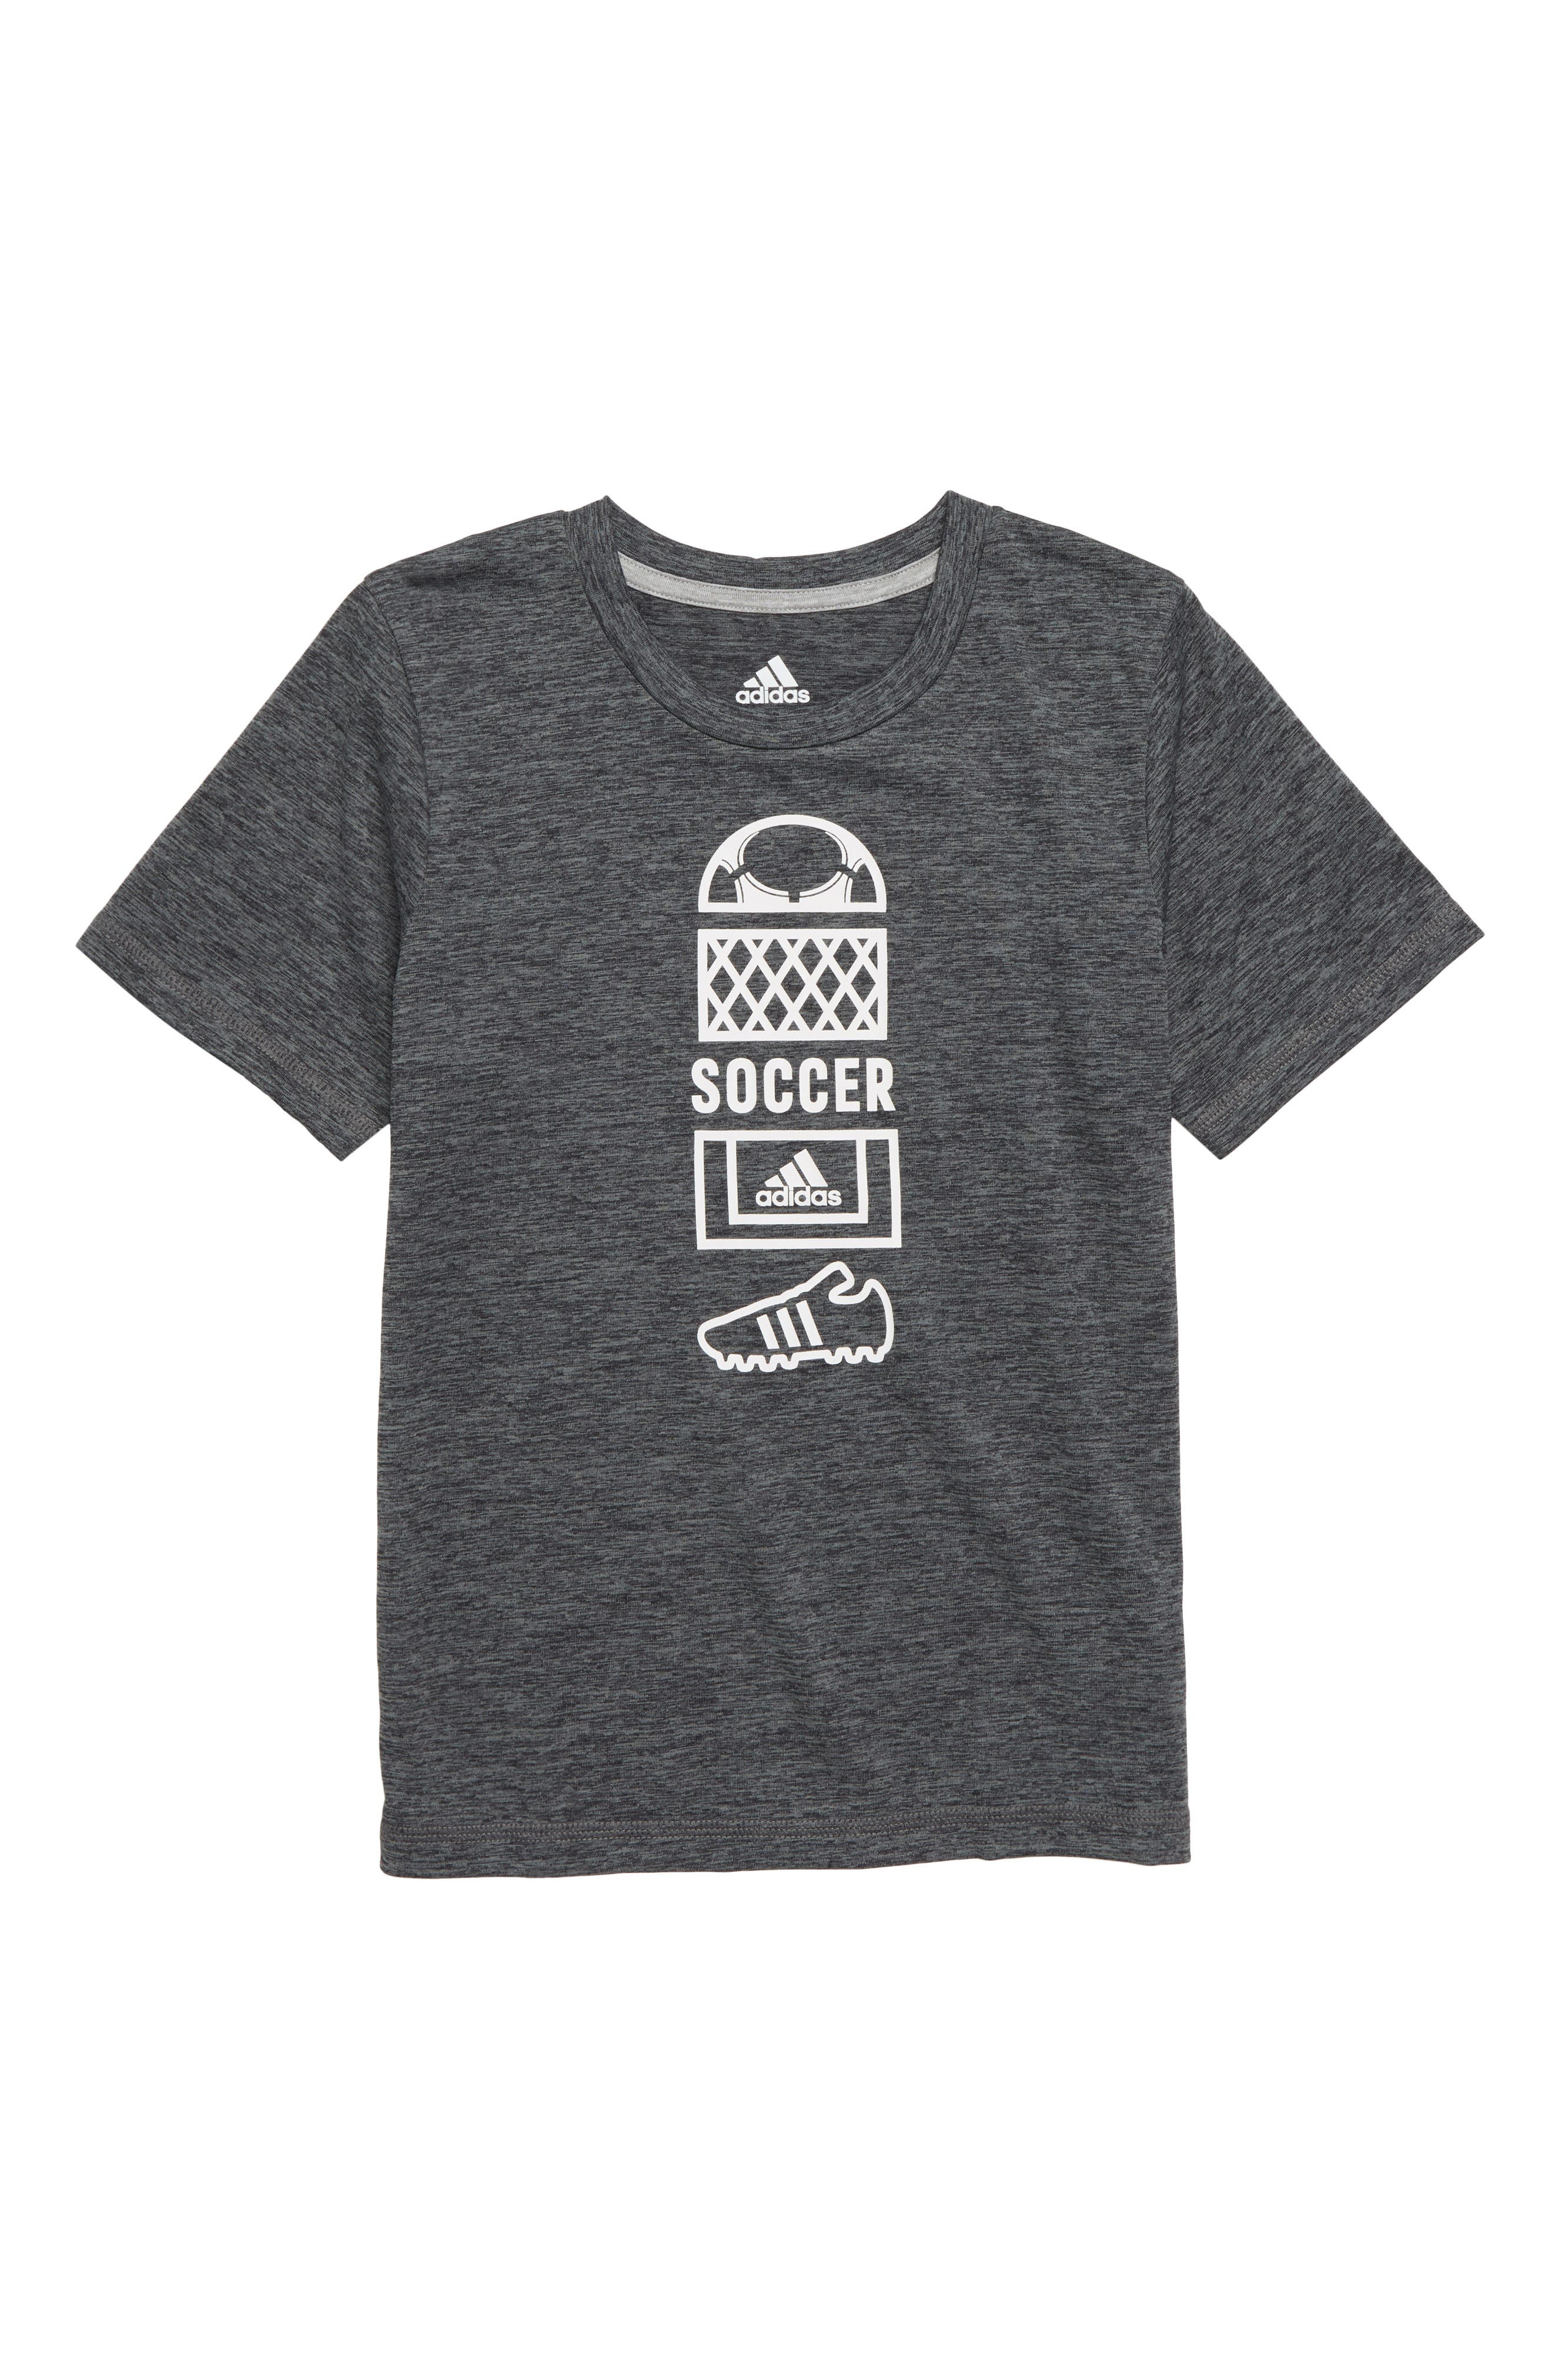 Soccer Vertical Collage Graphic T-Shirt,                         Main,                         color, DARK GREY